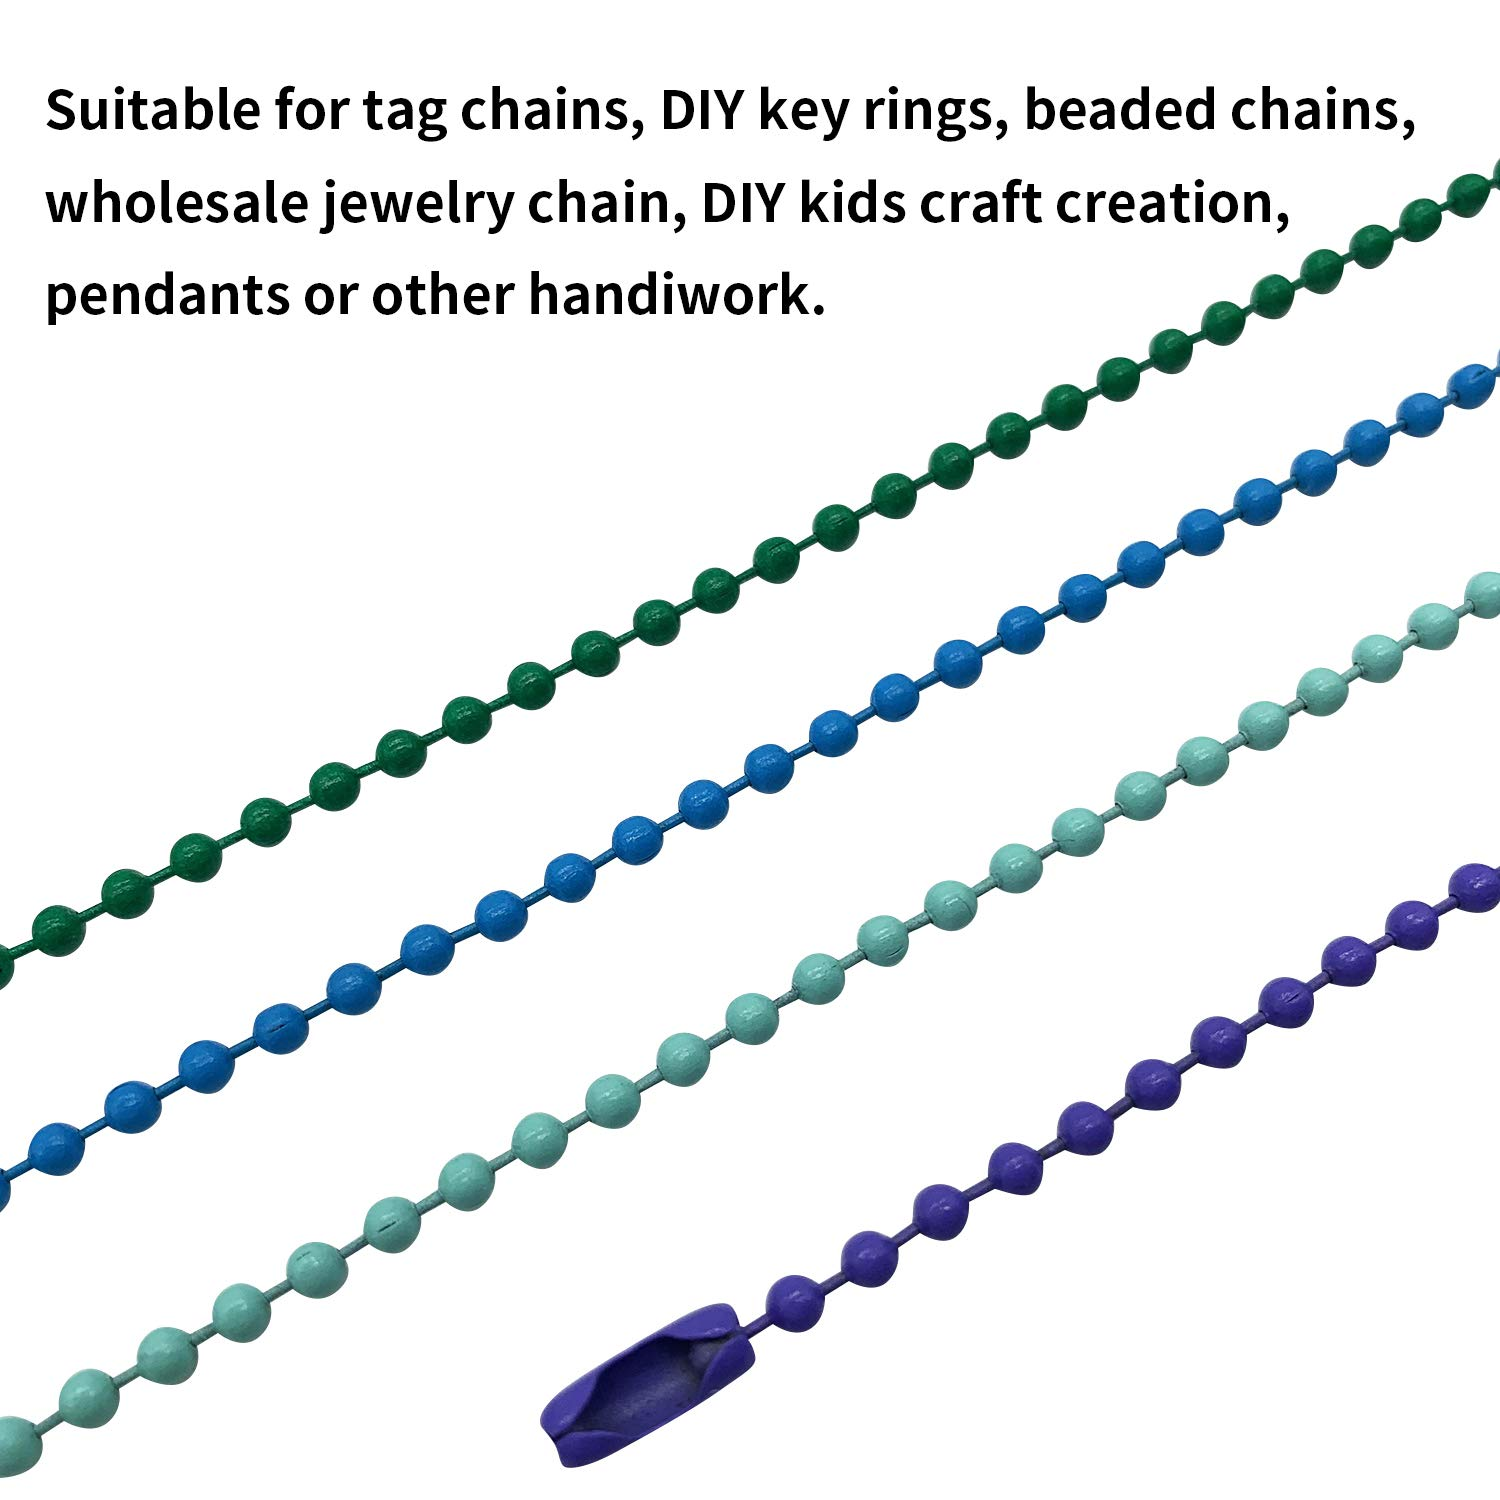 20 Colors 200 Pieces 120mm Long Bead Connector Clasp Mixed Color 2.4 mm Diameter Metal Ball Chain Keychain Tag Key Rings